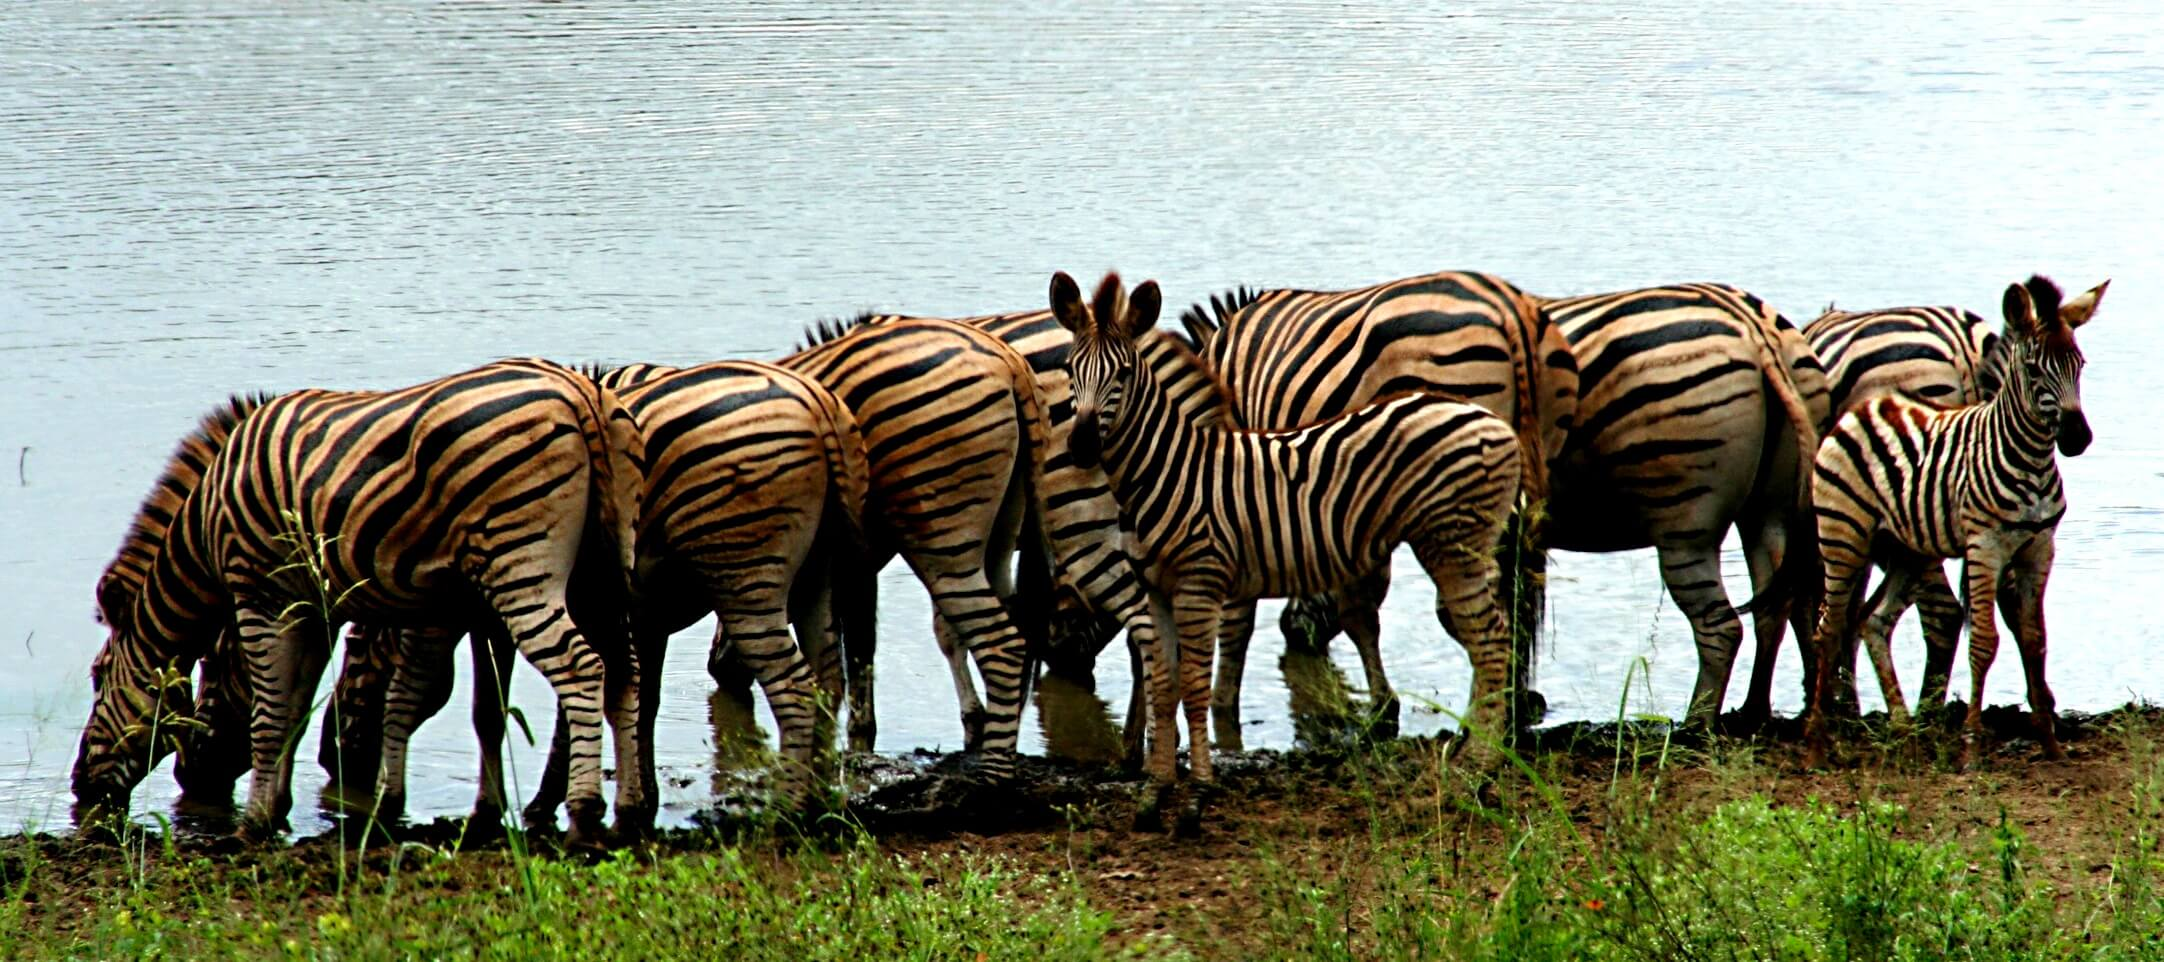 Five Essentials for an African Safari - Thomas Cook India Travel Blog